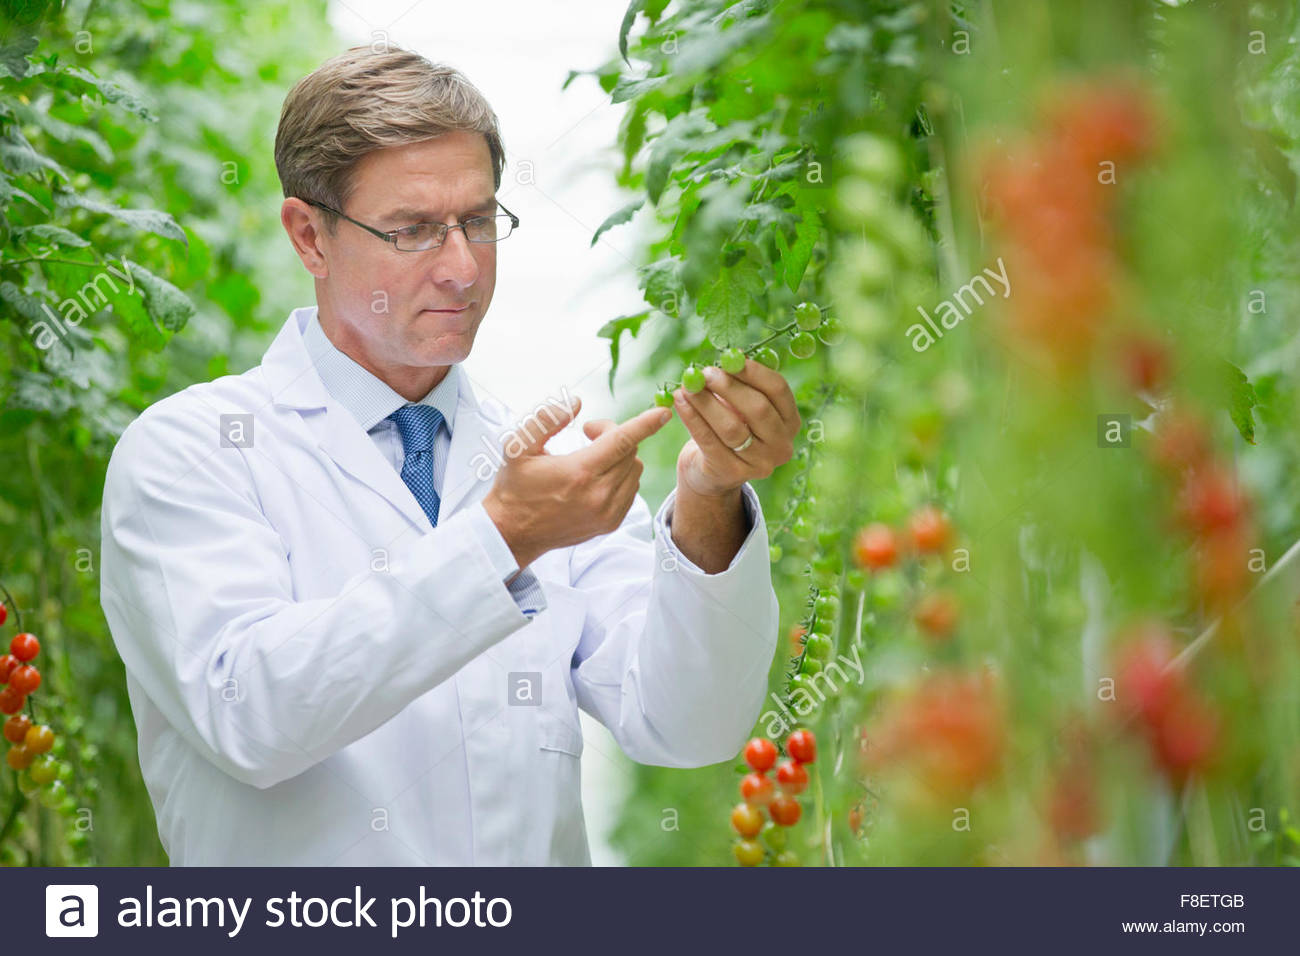 Concentré de tomates de vigne l'examen scientifique des aliments plants in greenhouse Photo Stock